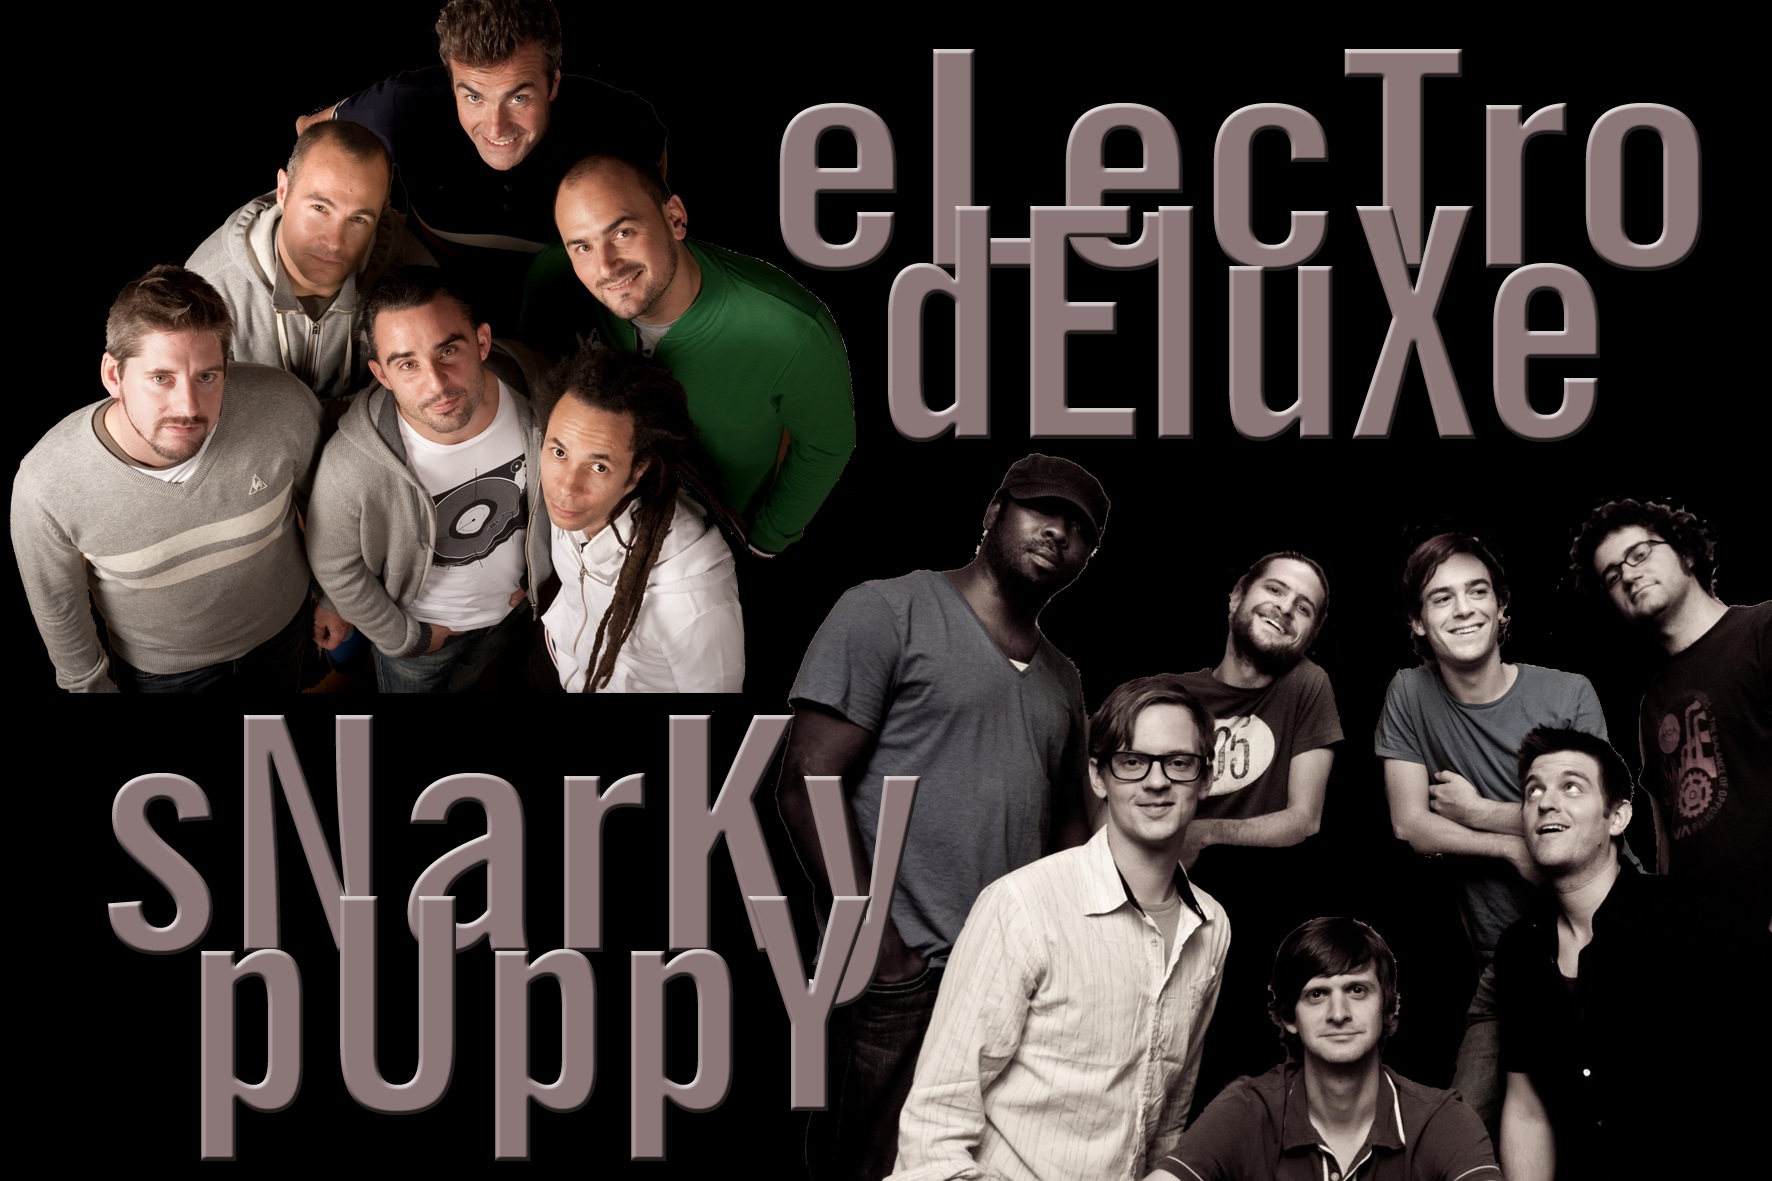 Electro Deluxe & Snarky Puppy